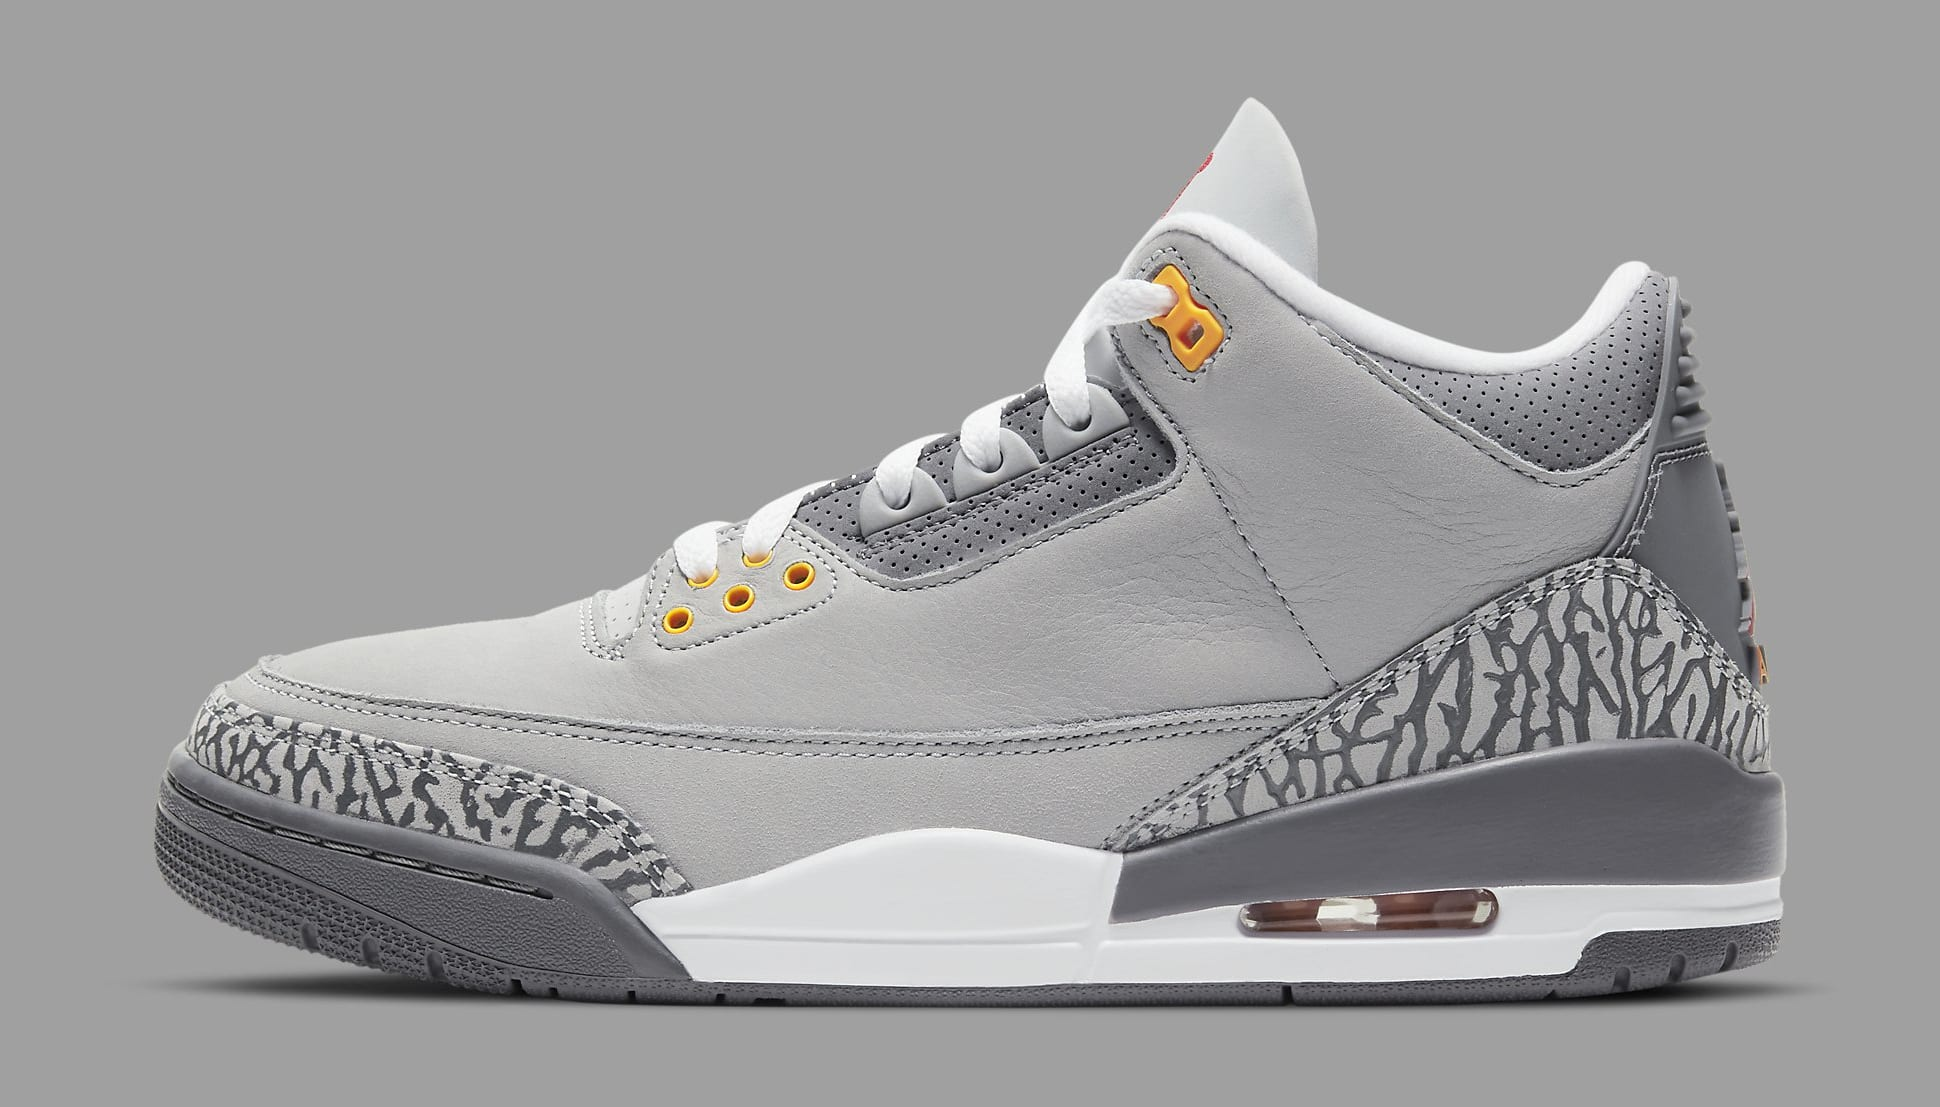 Air Jordan 3 Retro 'Cool Grey' 2021 CT8532-012 Lateral